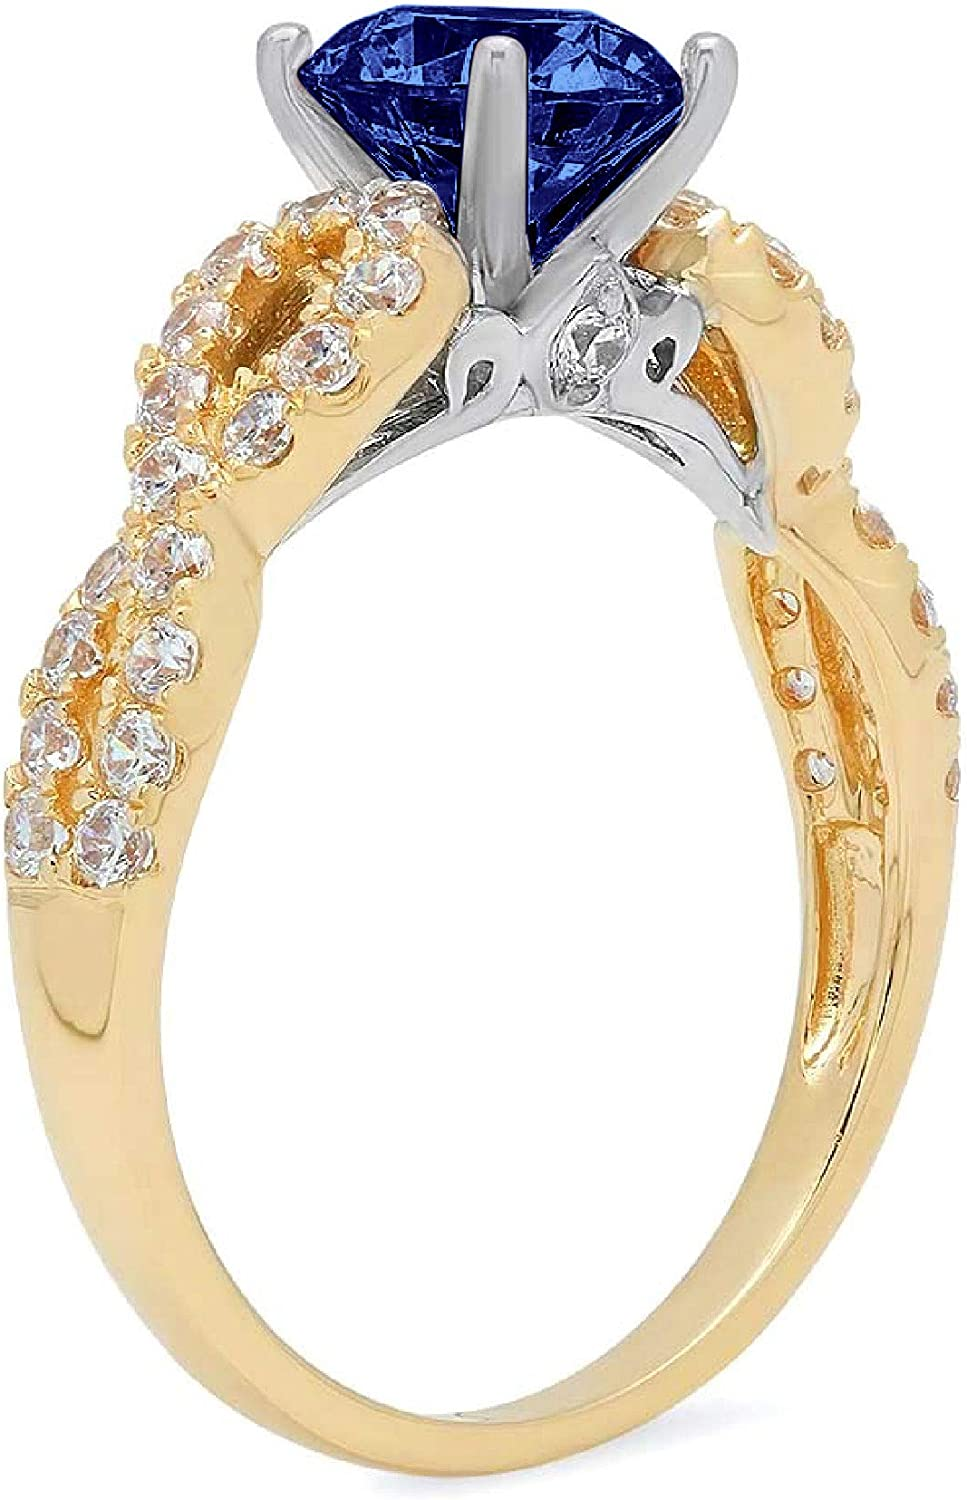 1.35ct Brilliant Round Cut Solitaire Genuine Flawless Simulated Tanzanite Gemstone Engagement Promise Anniversary Bridal Wedding Accent Ring Solid 18K 2 tone Gold